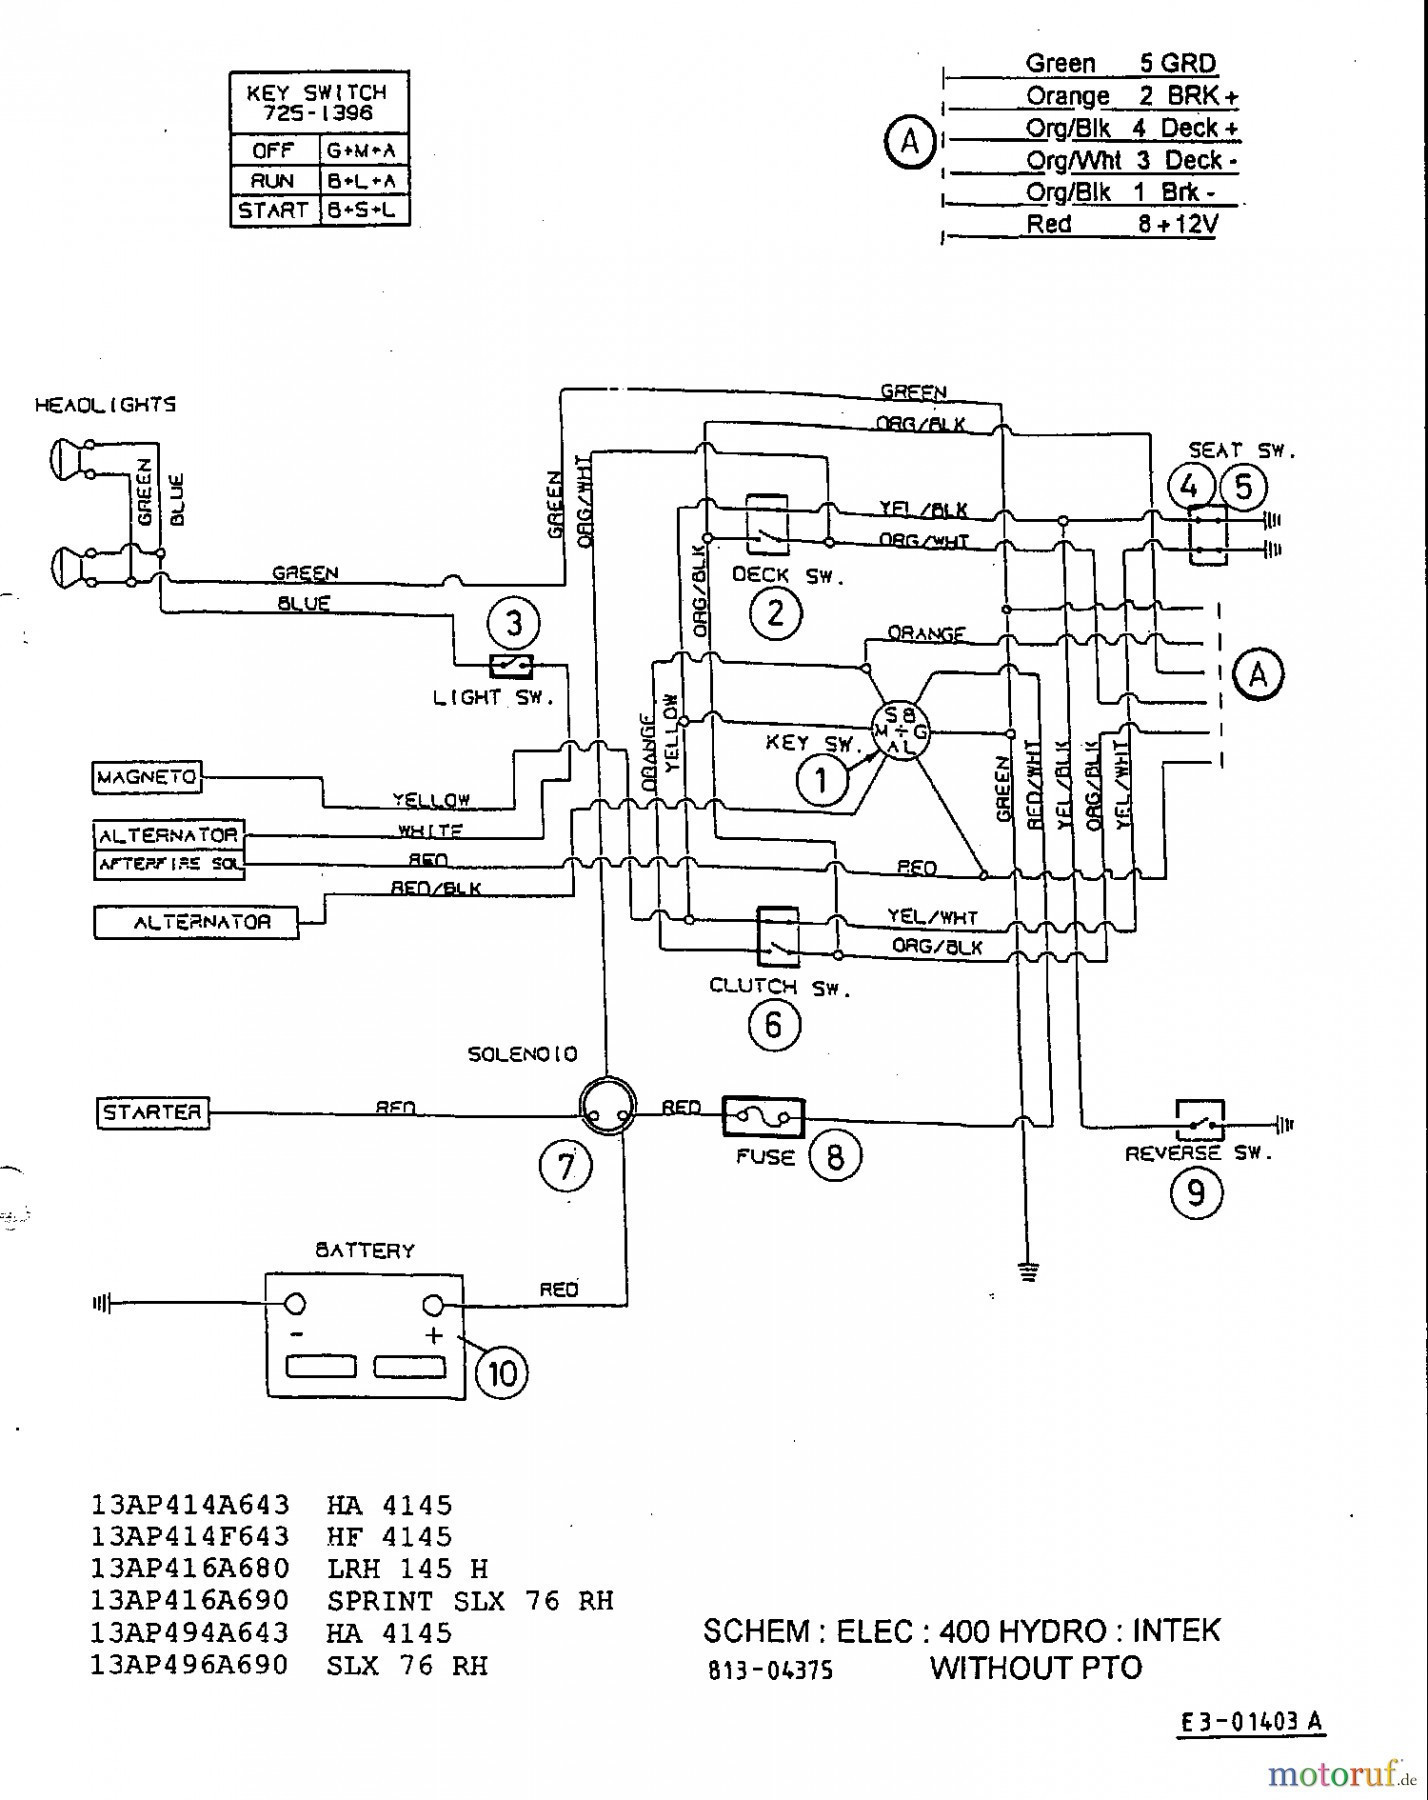 [SODI_2457]   Land Pride Wiring Diagram. ariens 992028 030000 zoom 2050 20hp b s 50 deck.  disc harrow parts diagram my wiring diagram. land pride razor z52 sn 472620  and above zero turn mower. | Land Rv Wiring Diagram |  | 2002-acura-tl-radio.info